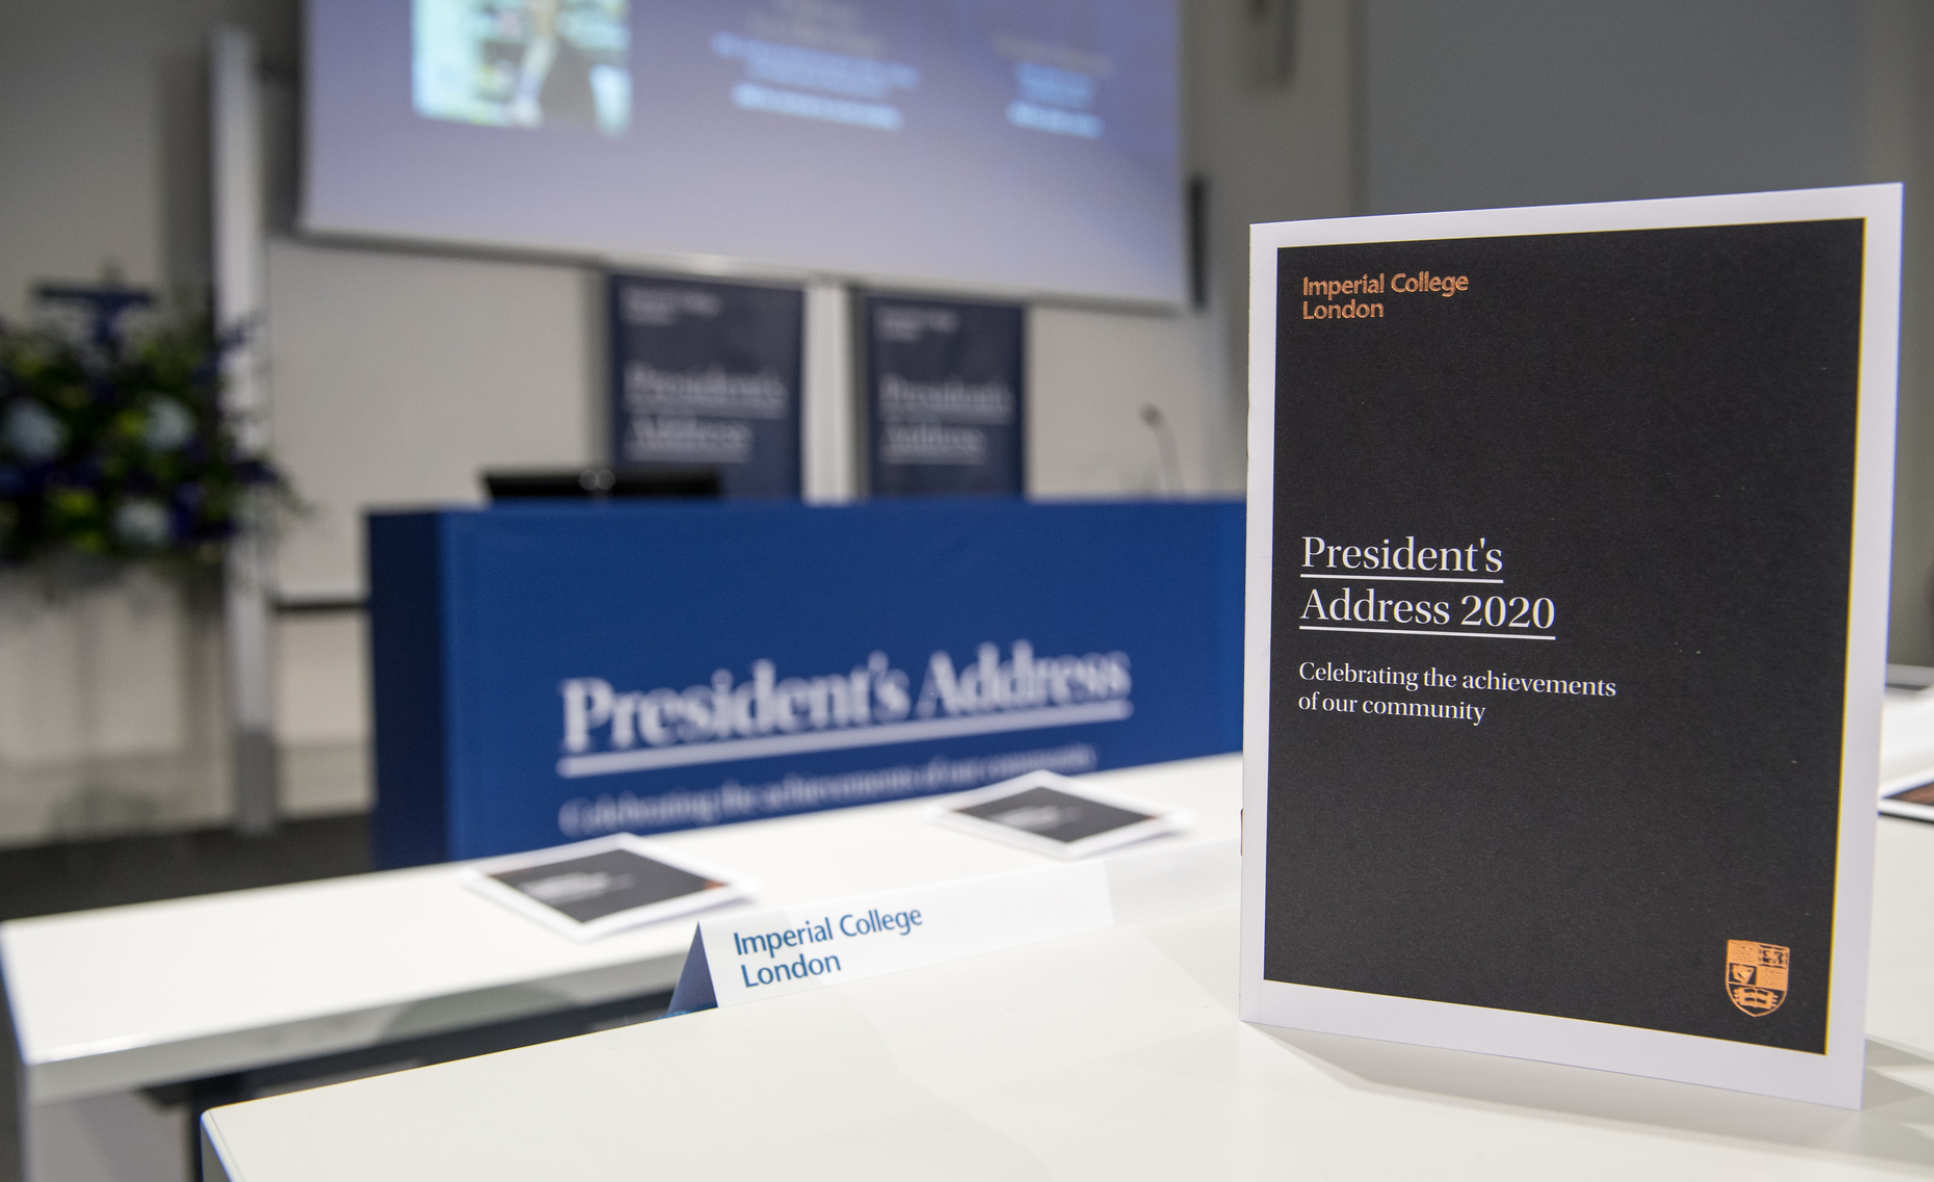 A lecture theatre set up for the 2020 President's Address, with a copy of the event programme showing the Imperial crest in the foreground